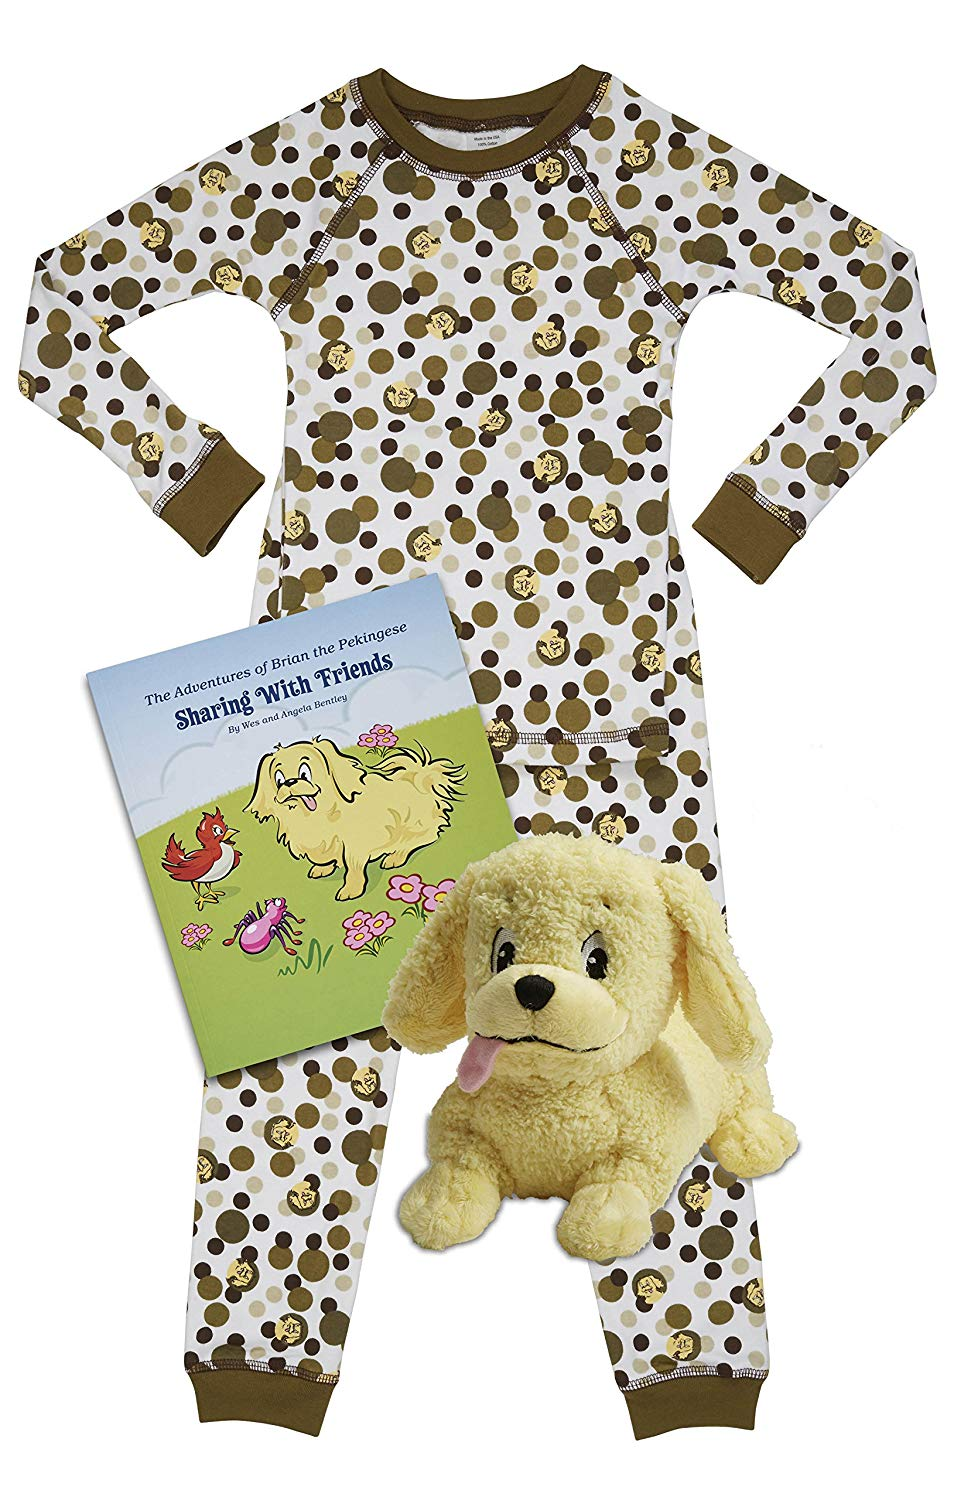 Brian the Pekingese Boys & Girls Cotton Pajamas, Plush Toy & Children's Book Bedtime Gift Set